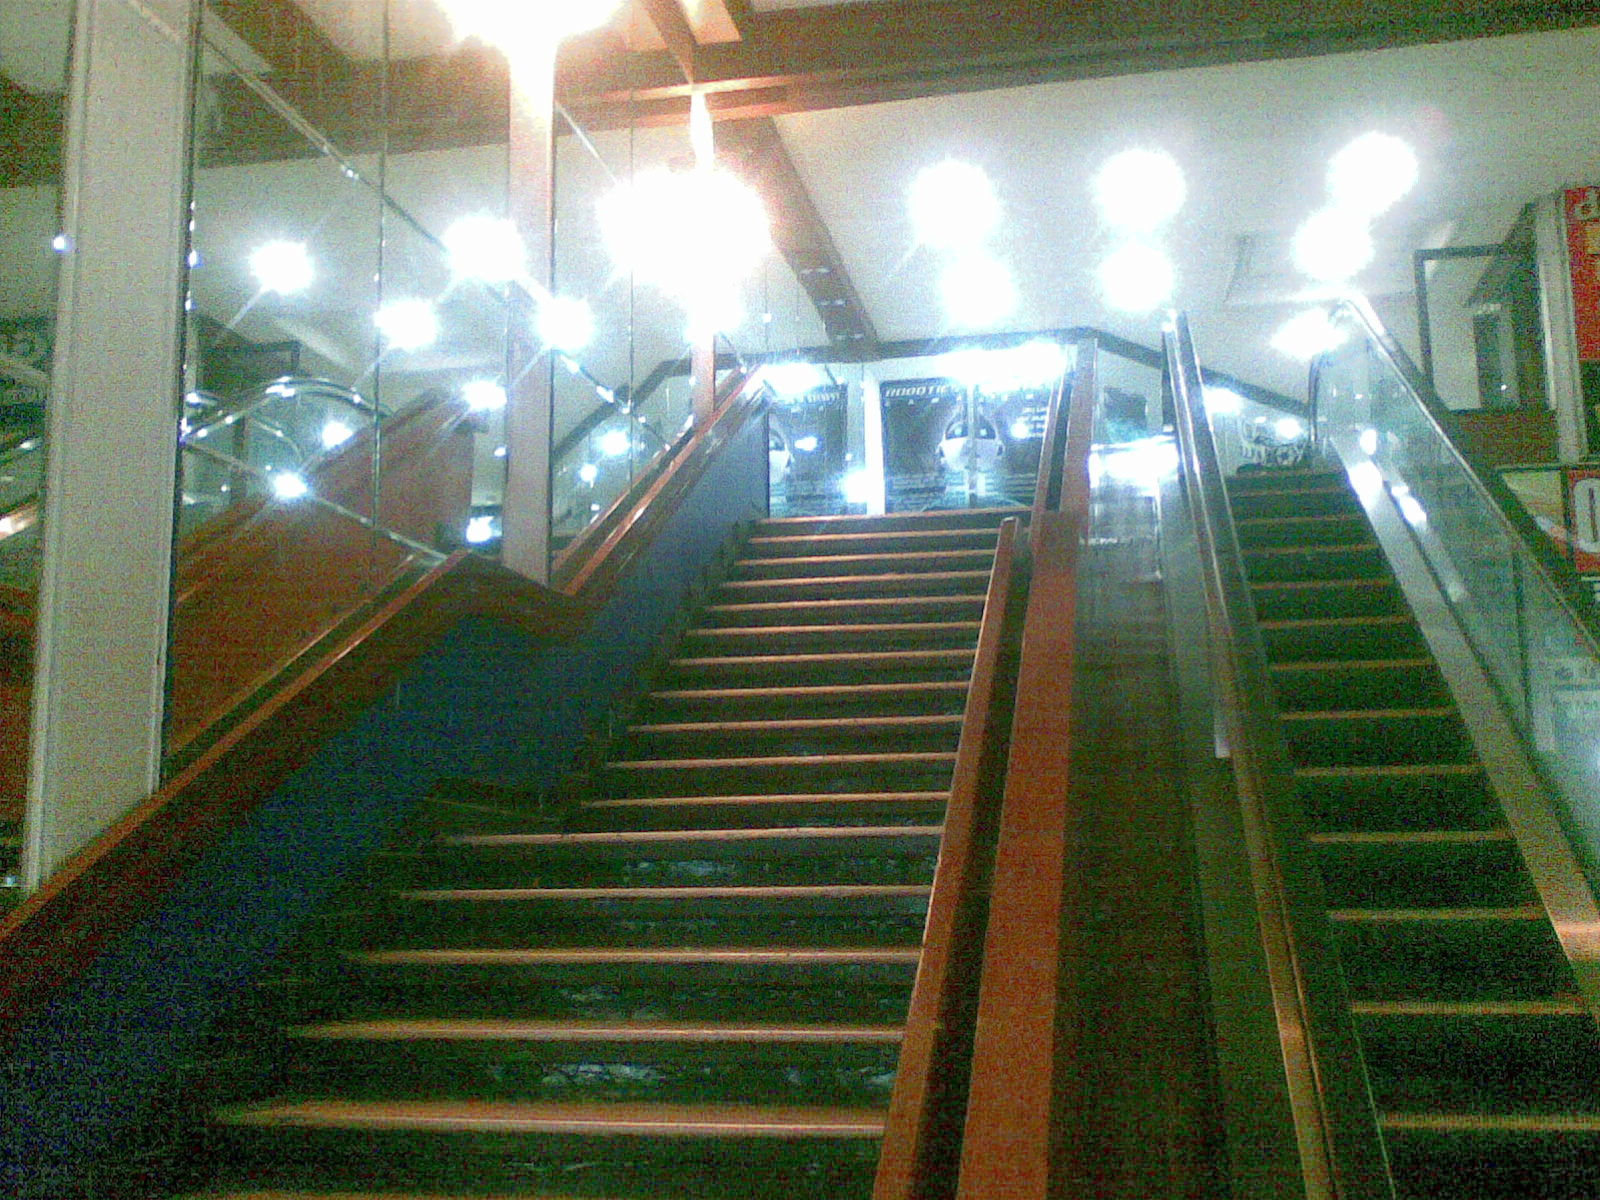 stairs to 2nd floor.